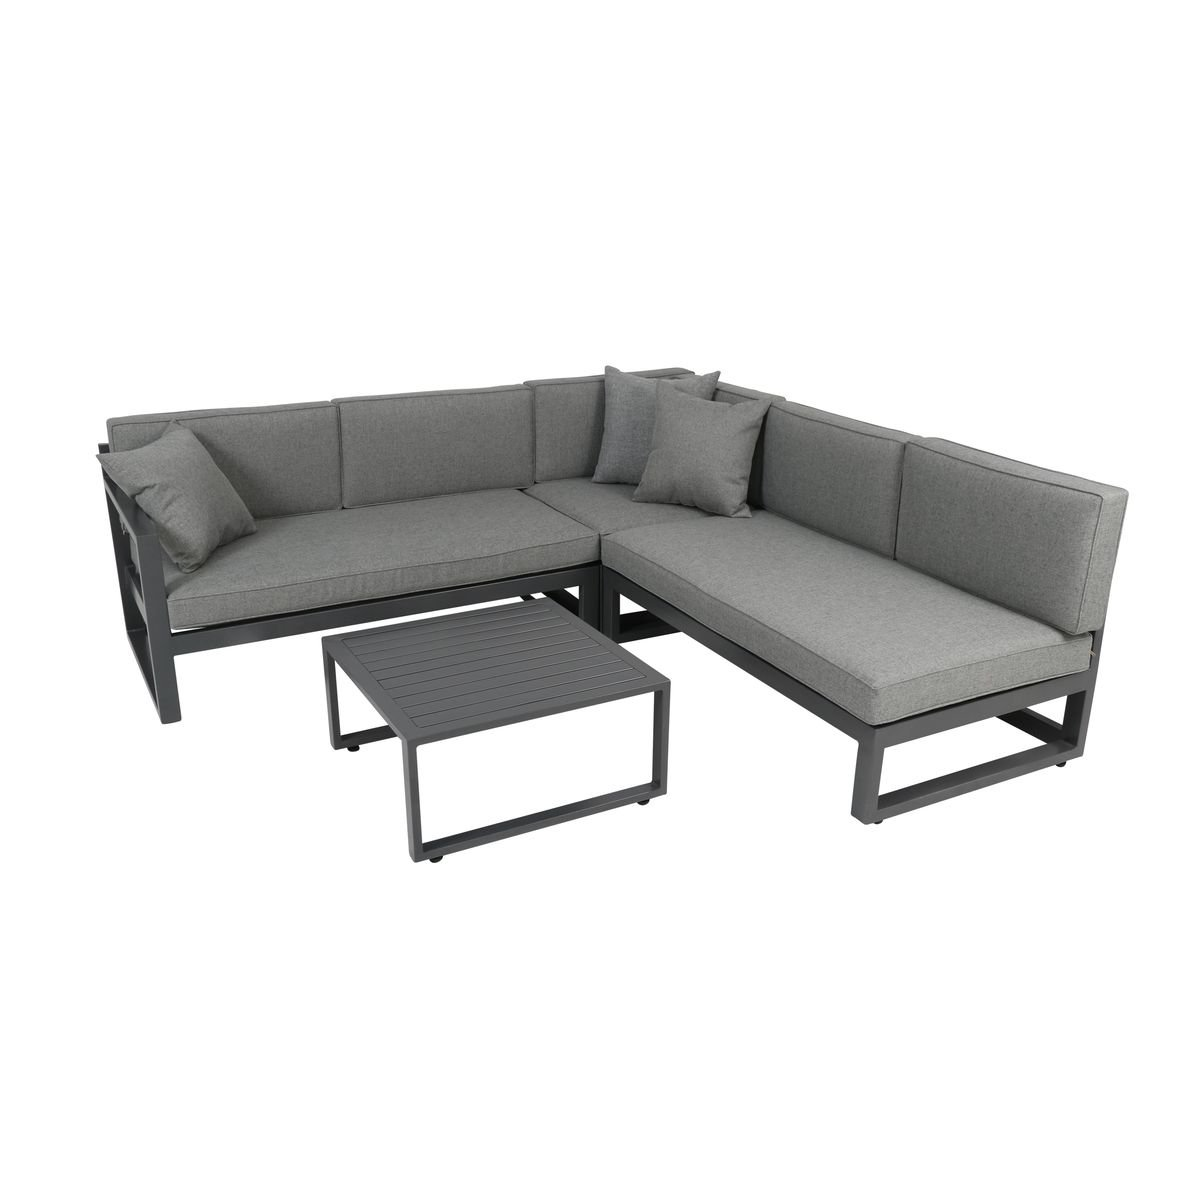 Greemotion gartenm bel set alu costa rica gartenlounge for Greemotion gartenmobel